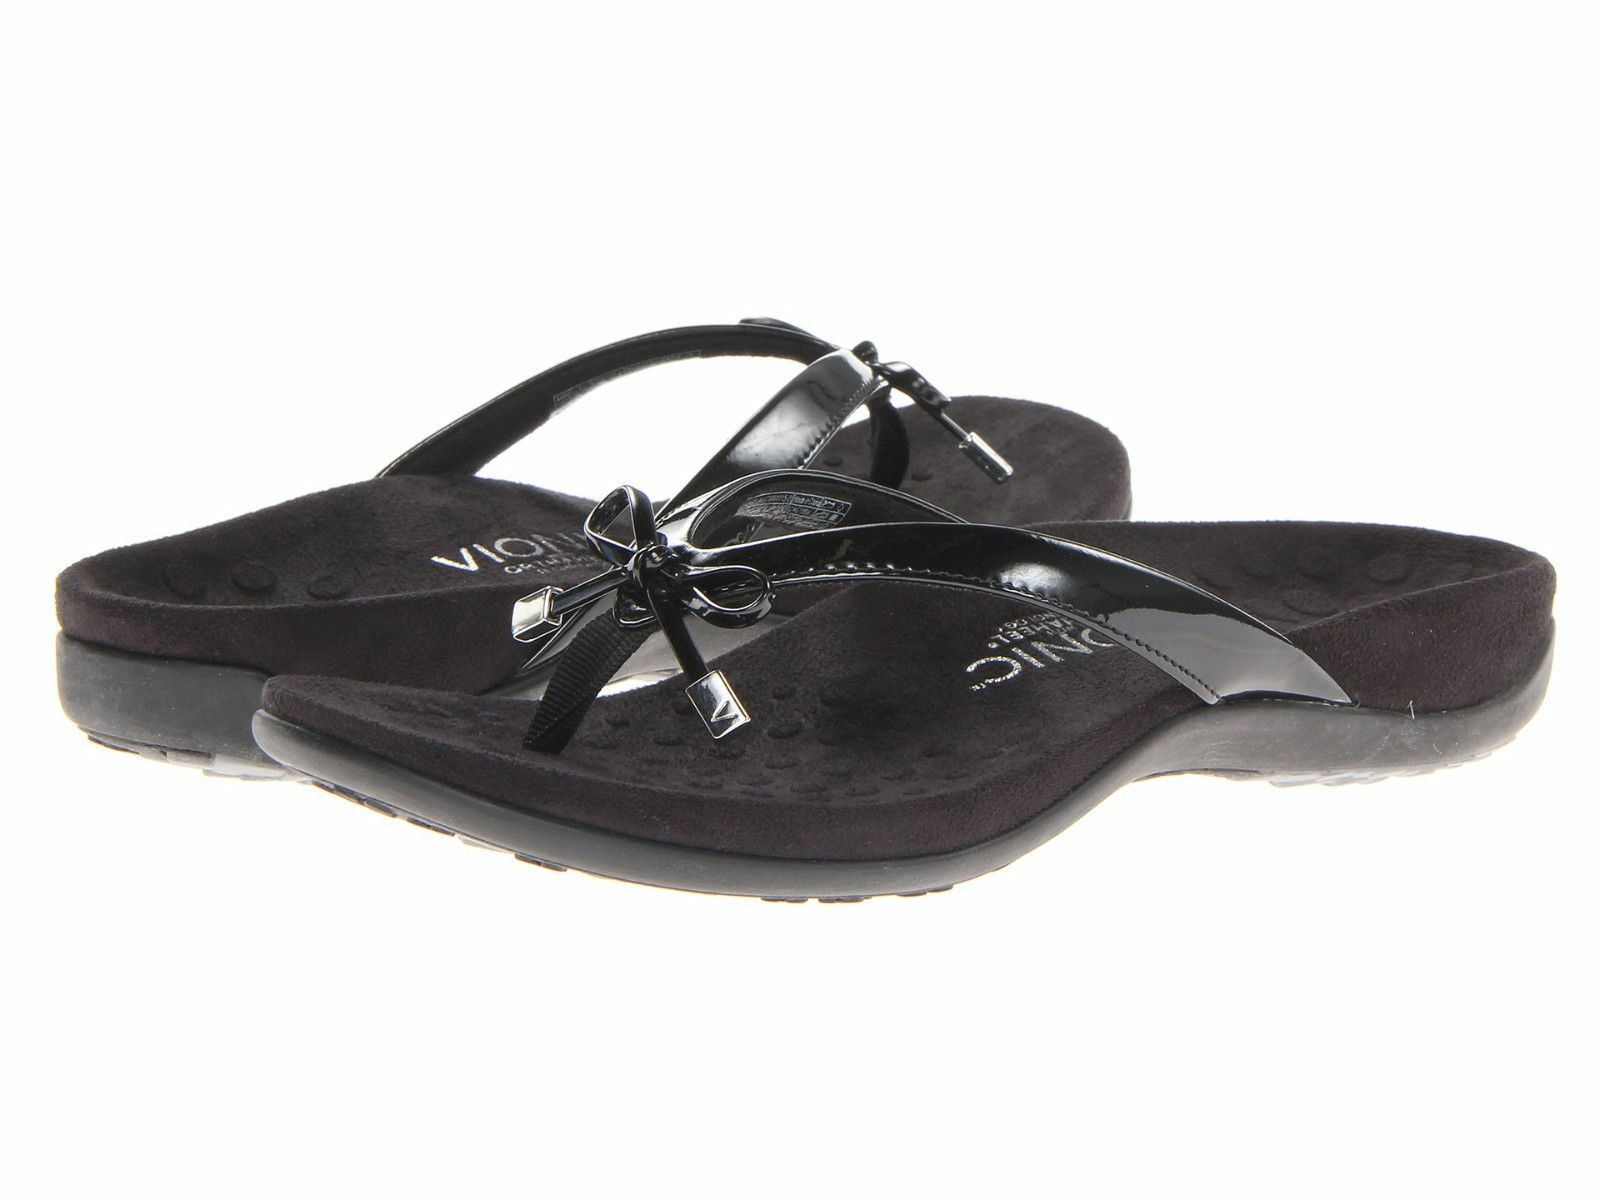 donna donna donna Vionic Orthaheel Bella II Flip Flop 44BELLAII nero 100% Authentic New f689e0